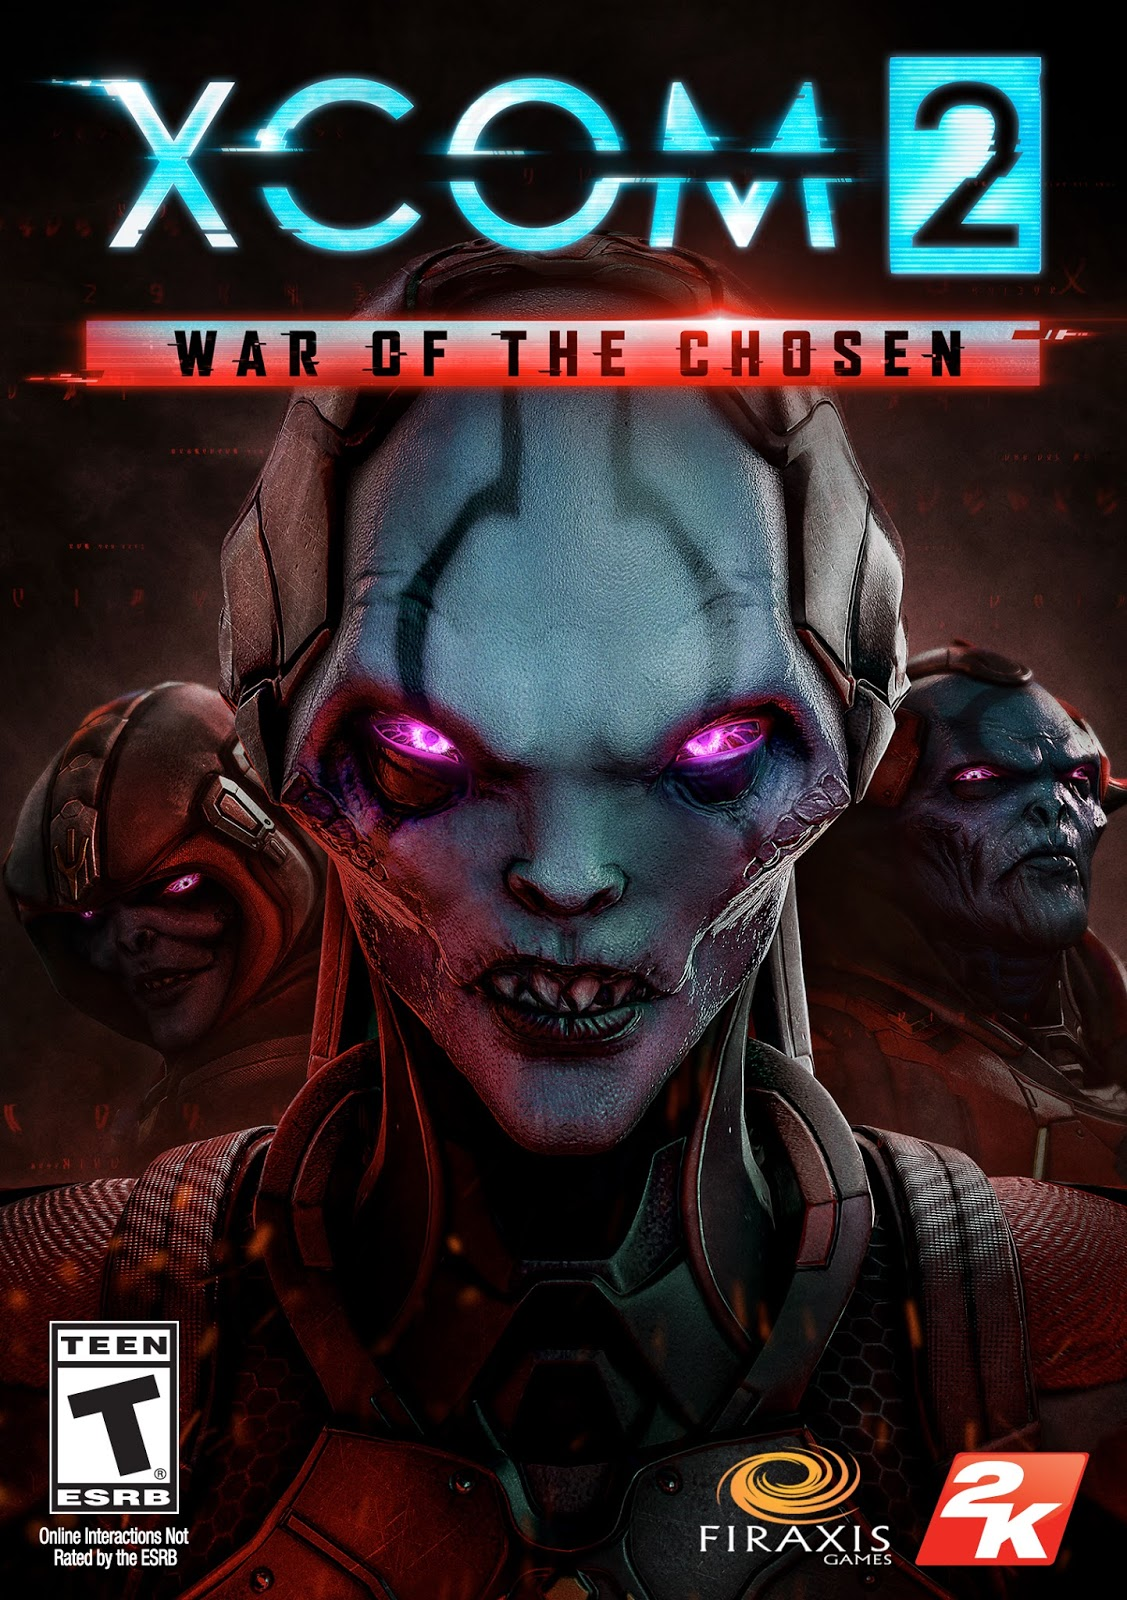 New Games XCOM 2 WAR OF THE CHOSEN PC PS4 Xbox One